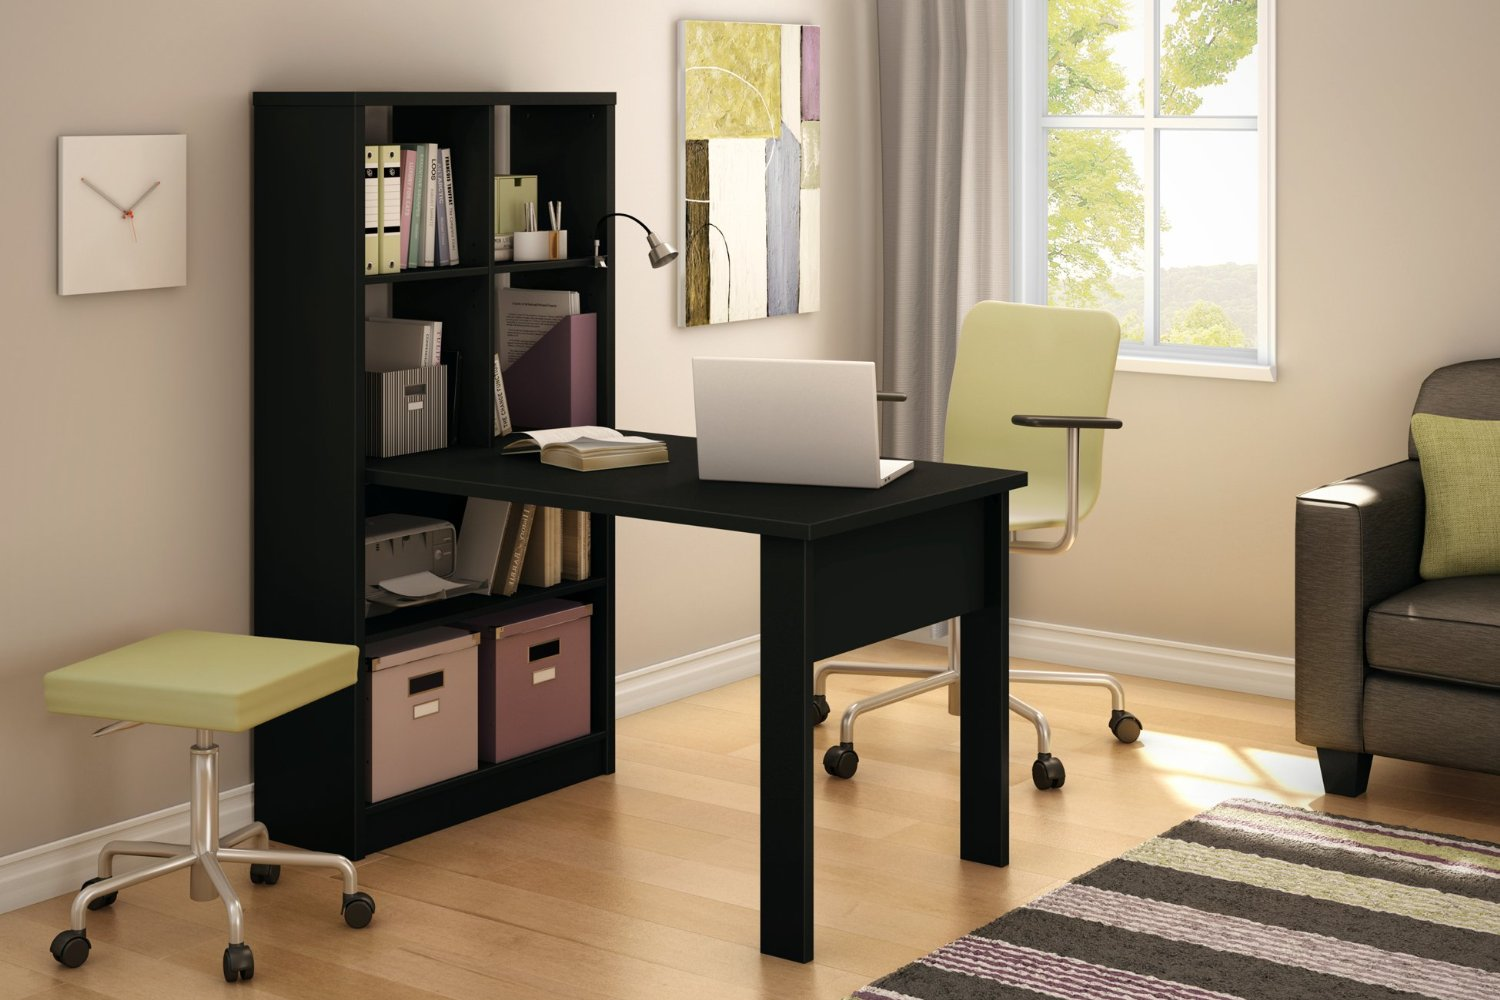 Desk Storage Unit Combo 149 99 From 204 Great Reviews